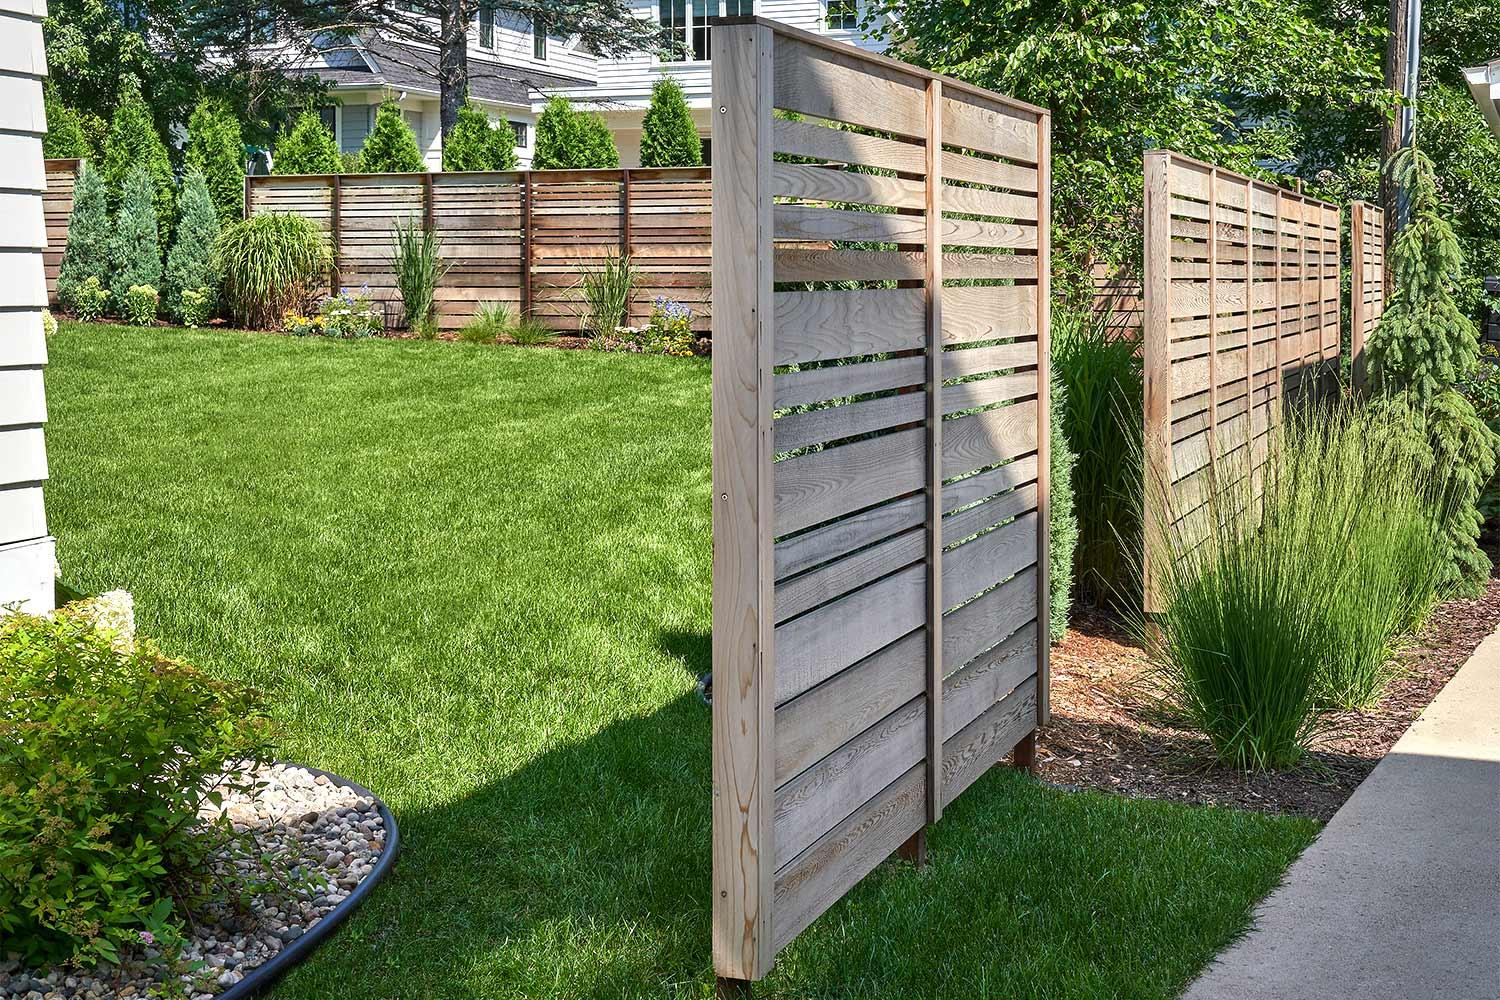 Horizontal slat fencing around the backyard and side perimeter of this Edina, MN landscape.